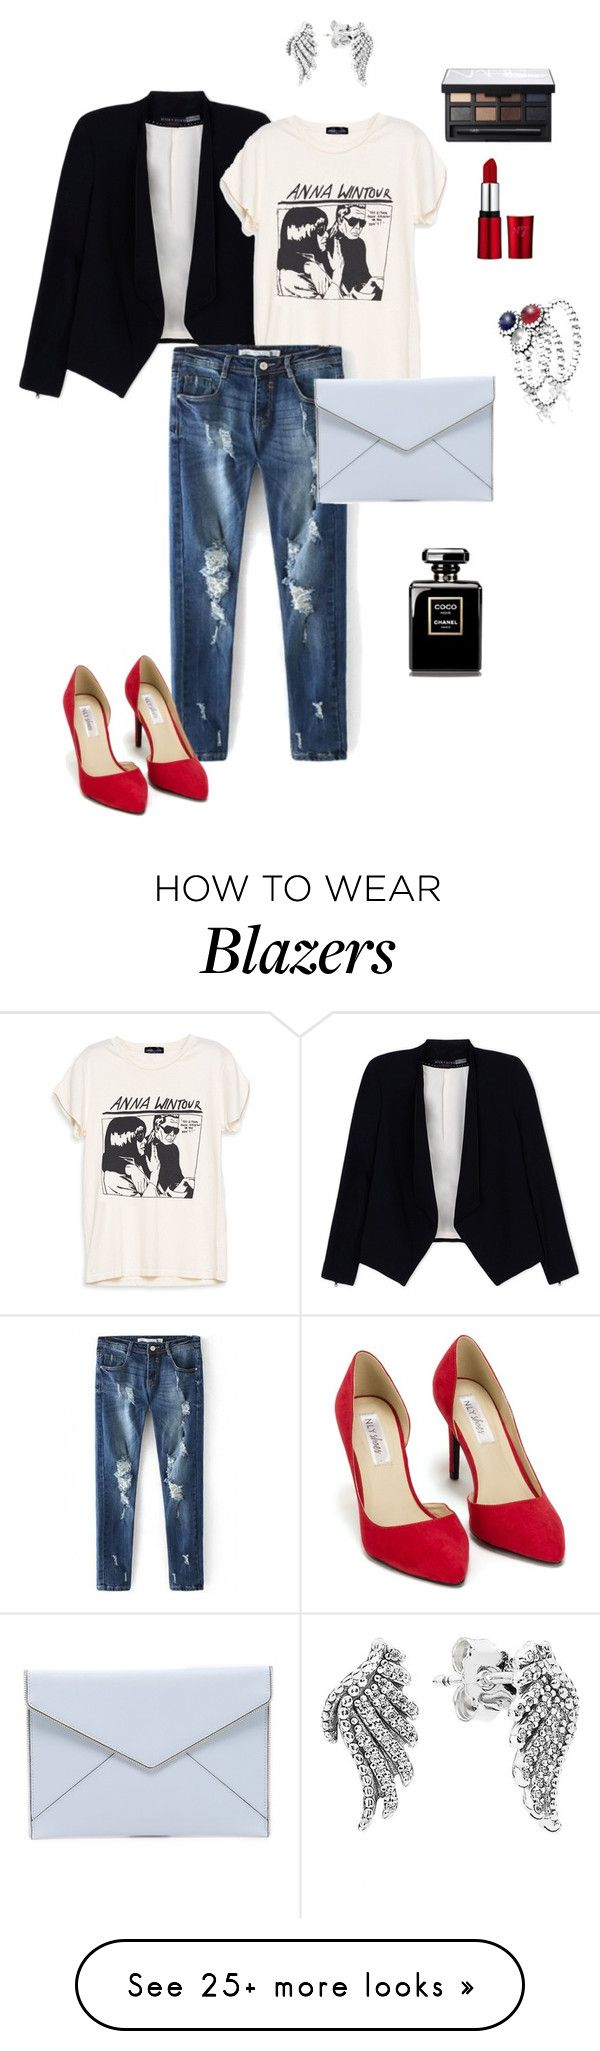 """red pumps"" by ulusia-1 on Polyvore featuring Alice + Olivia, Nly Shoes, Rebecca Minkoff, Pandora and NARS Cosmetics"